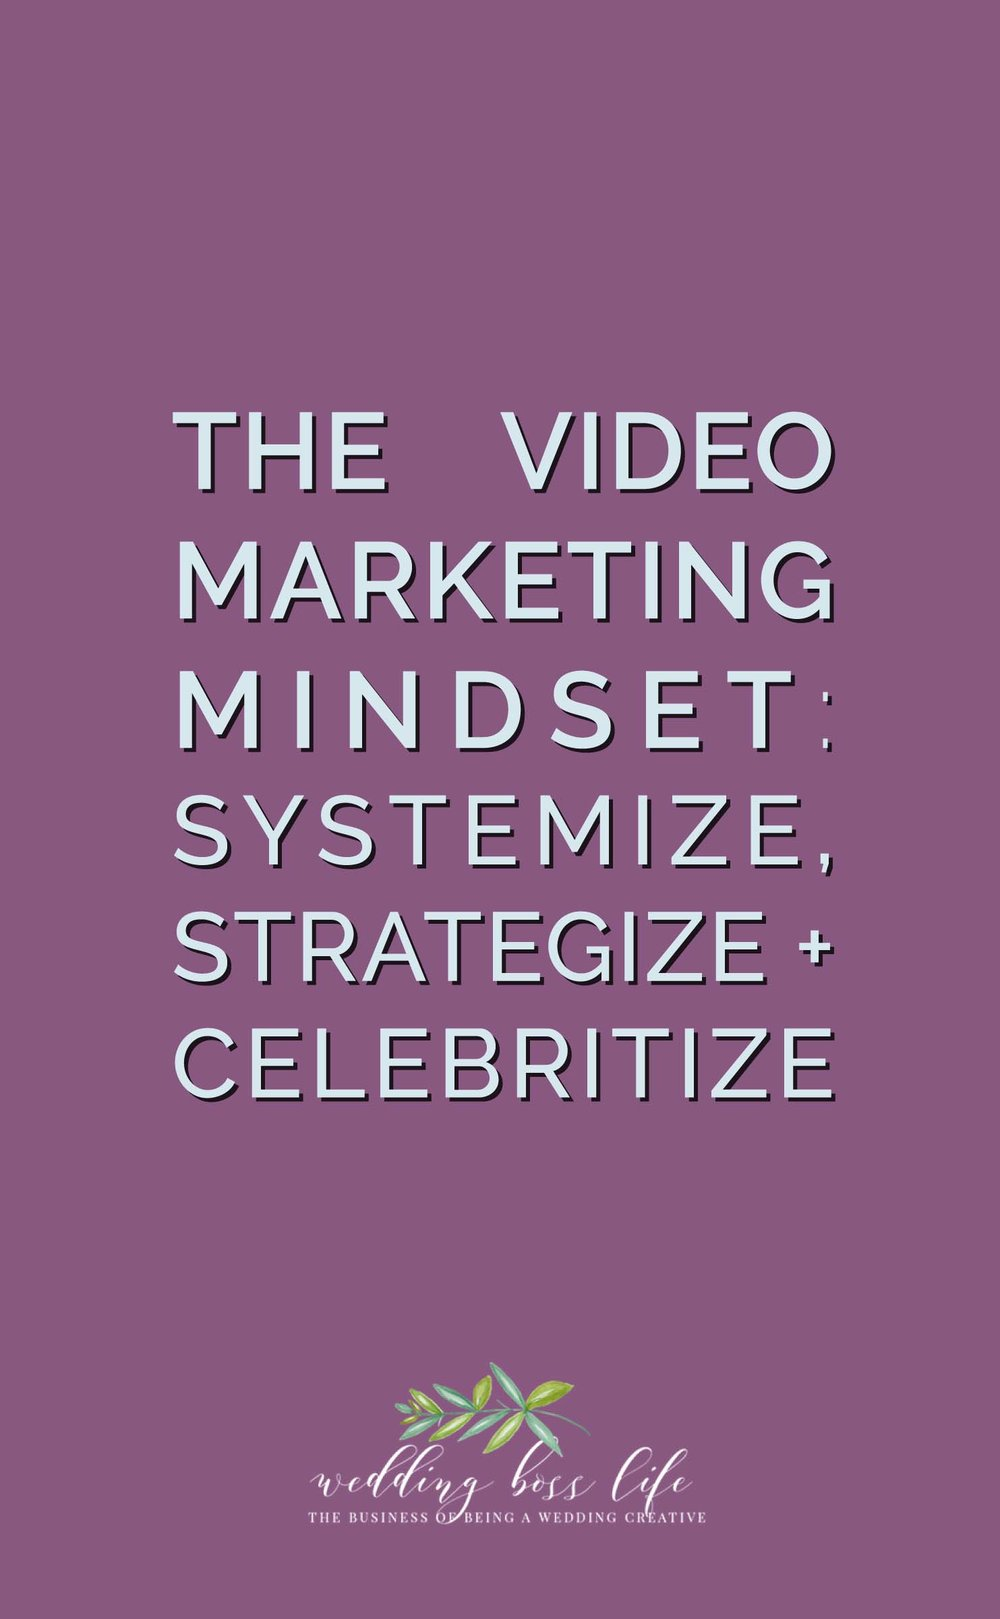 How to Systemize, Strategize, and Celebritize Your Video Marketing Efforts